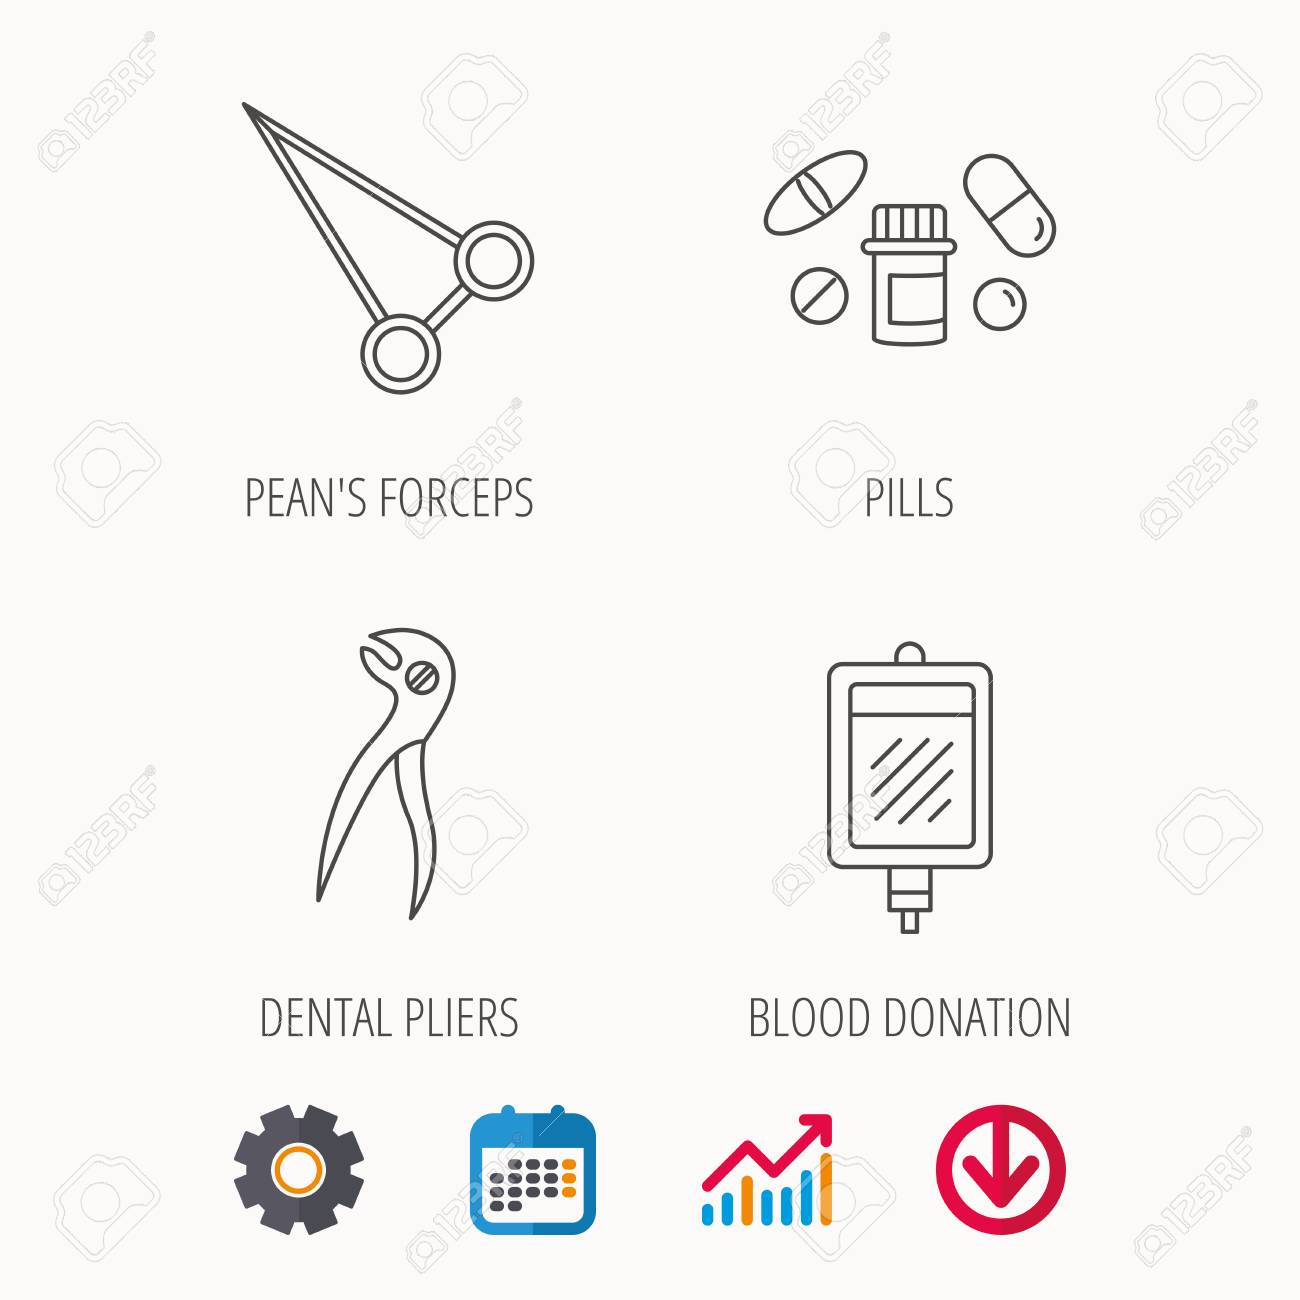 Medical pills blood and dental pliers icons peans forceps linear medical pills blood and dental pliers icons peans forceps linear sign calendar biocorpaavc Gallery